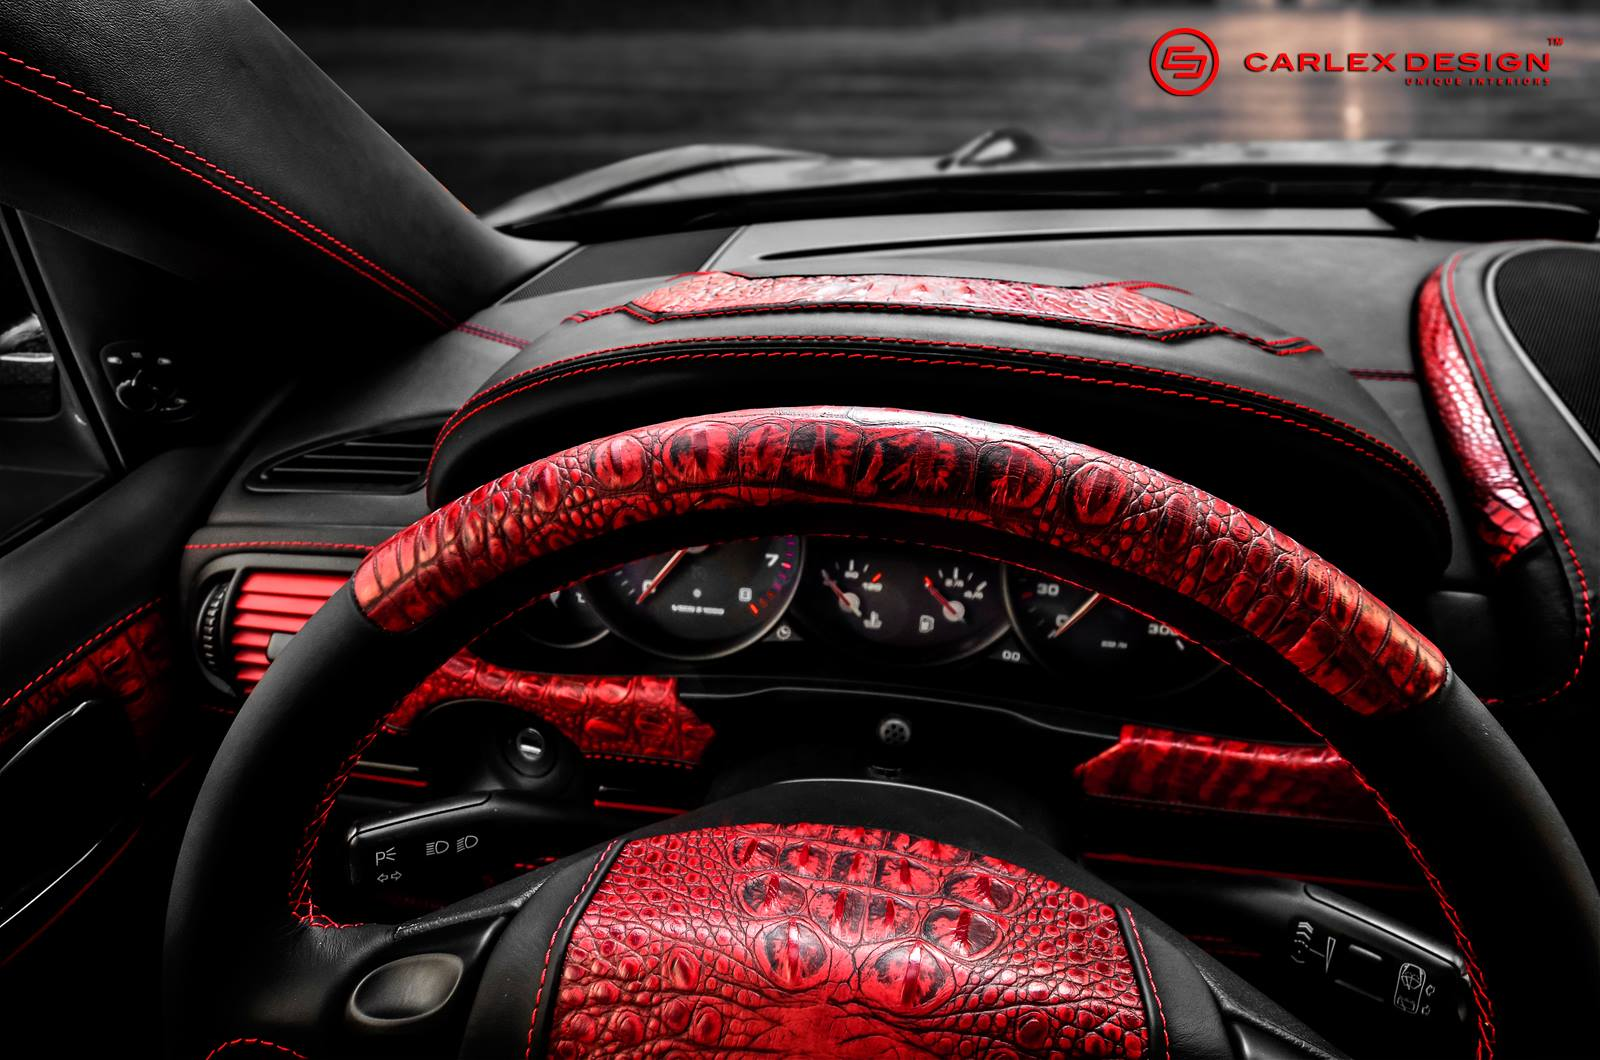 Amg G Wagon >> Porsche Cayenne Goes Reptilian with Red Crocodile Leather ...